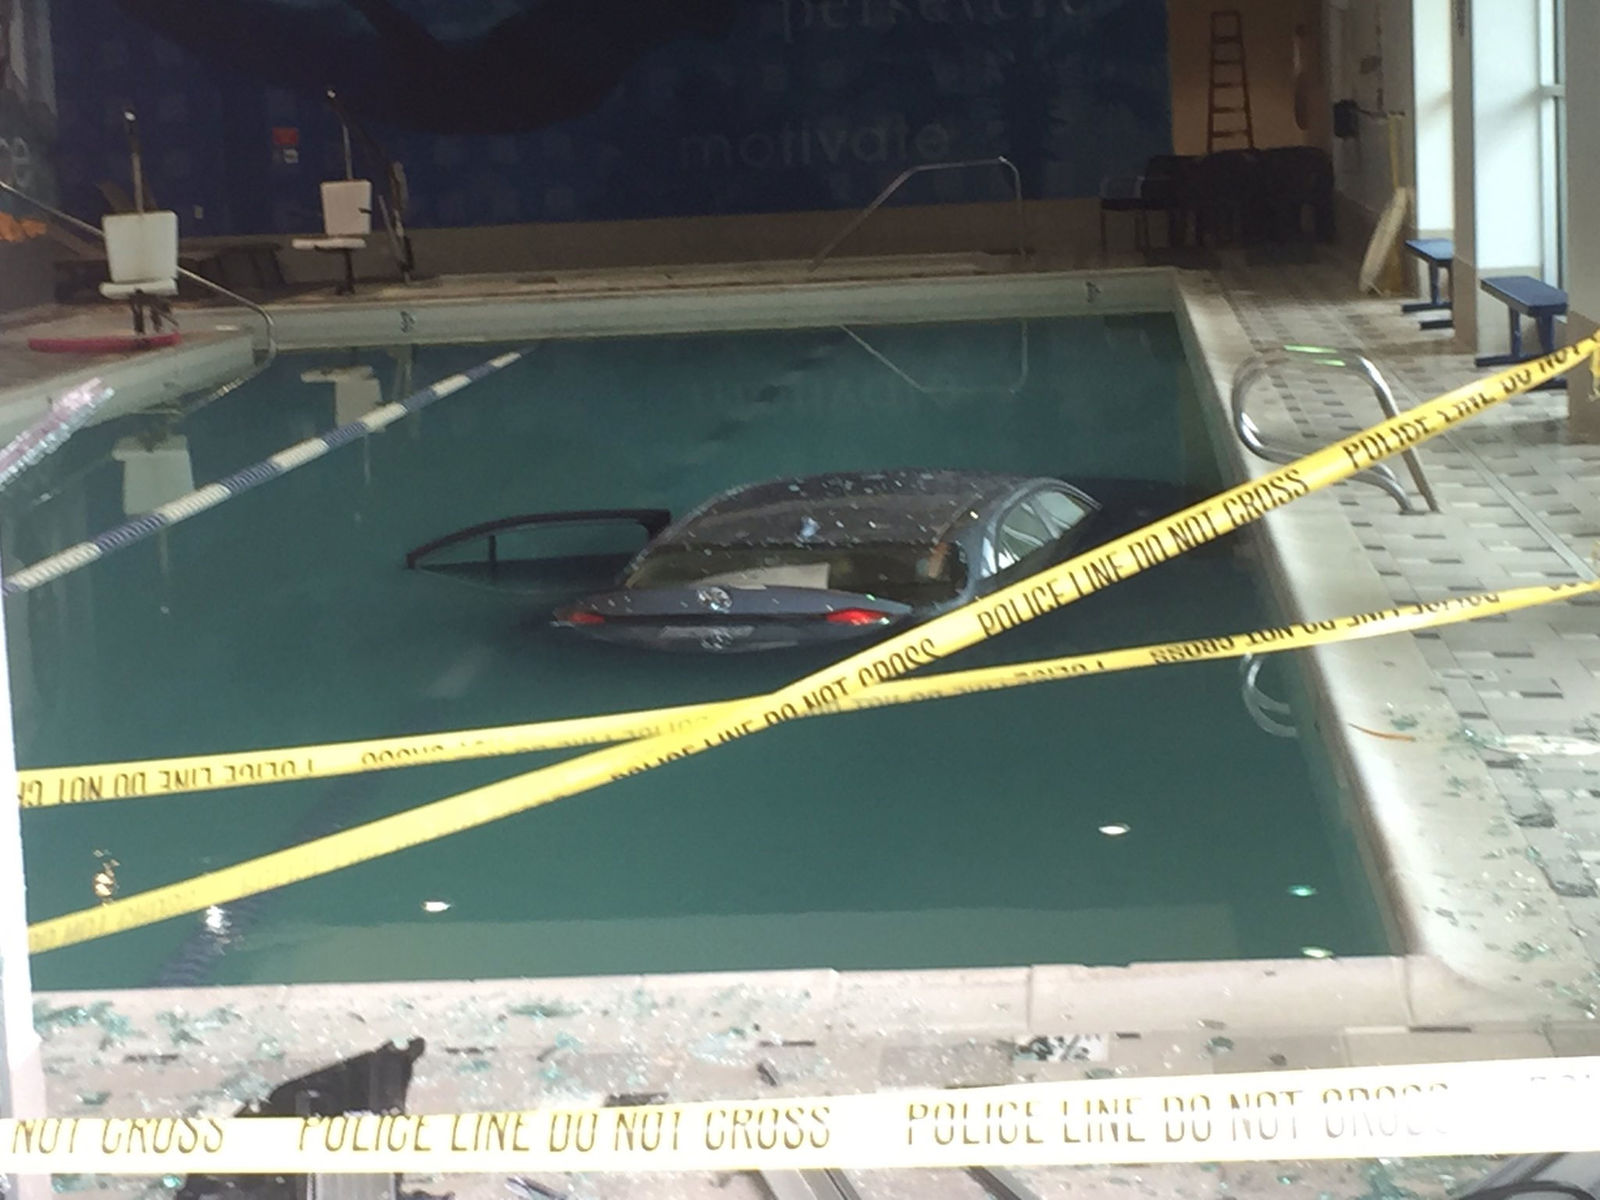 The car sunk to the bottom of the swimming pool at the LA Fitness facility in North Seattle. (KOMO News photo)